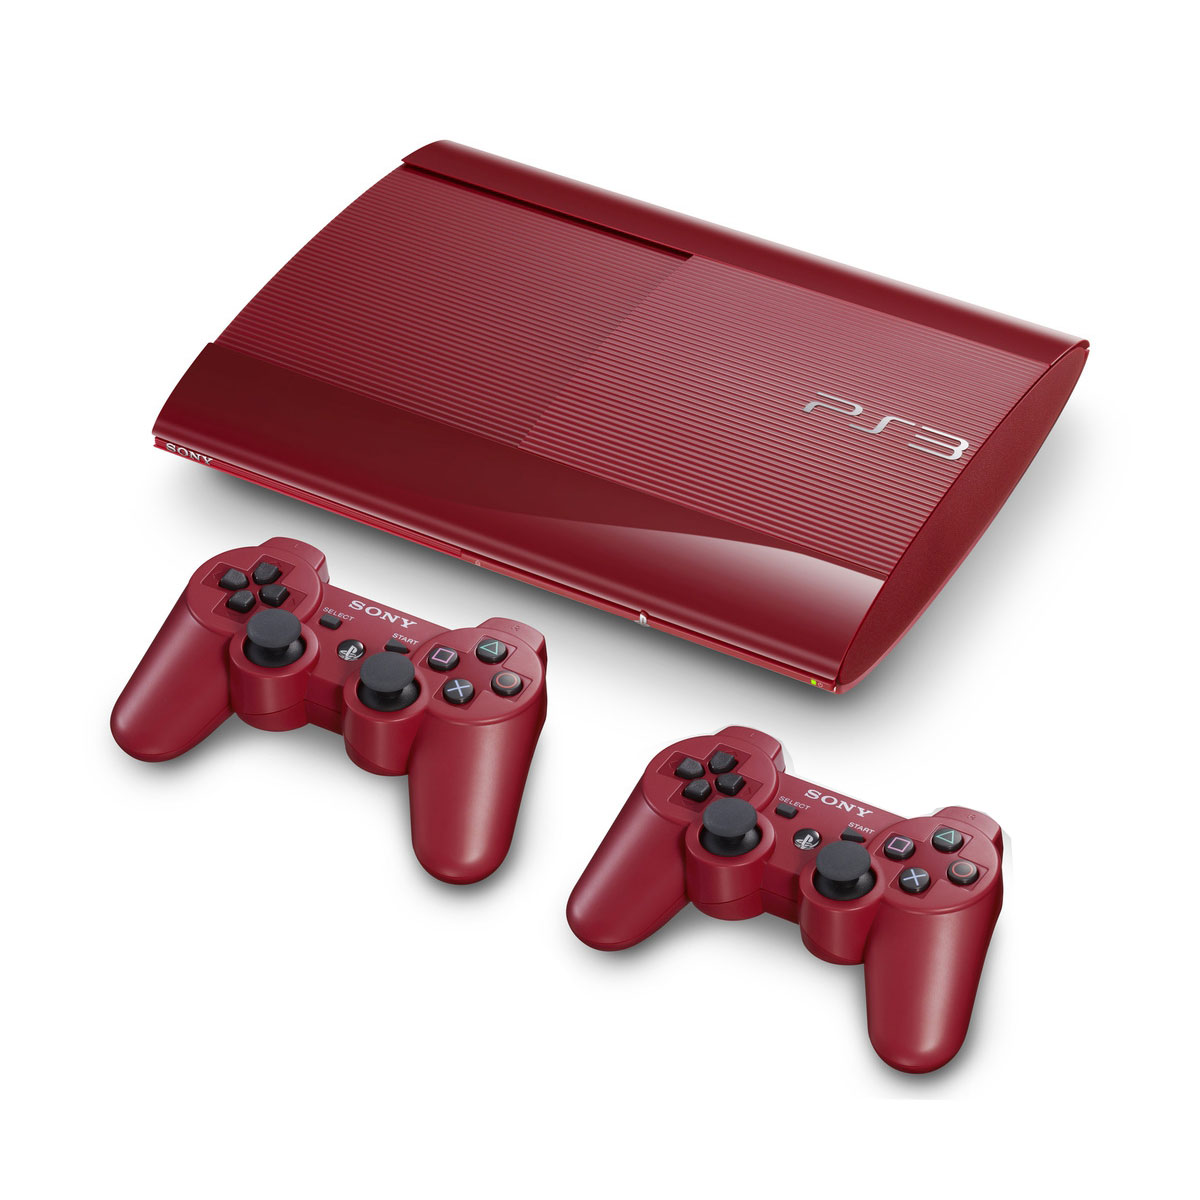 Sony playstation 3 ultra slim 500 go rouge 2 manettes sony computer entertainment - Console ps3 500 go pas cher ...